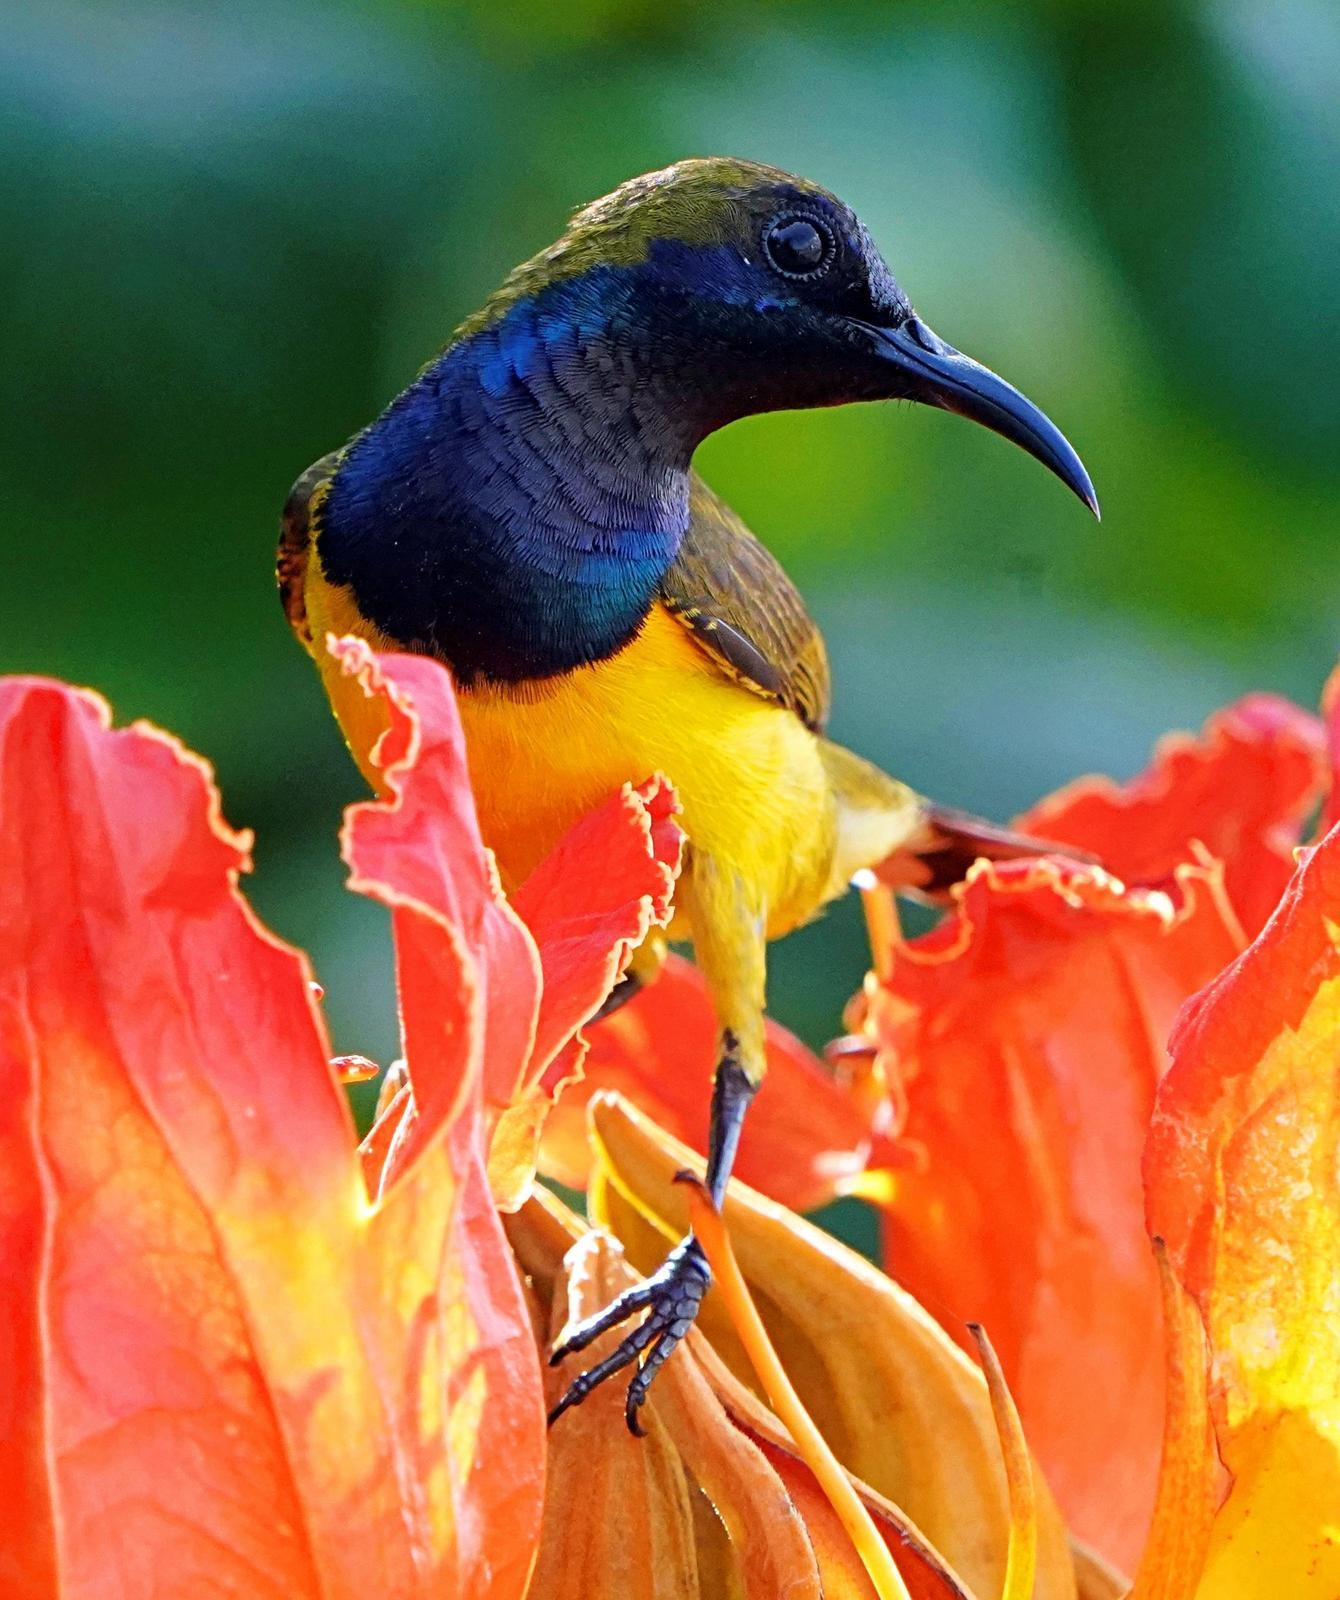 Olive-backed Sunbird Photo by Steven Cheong